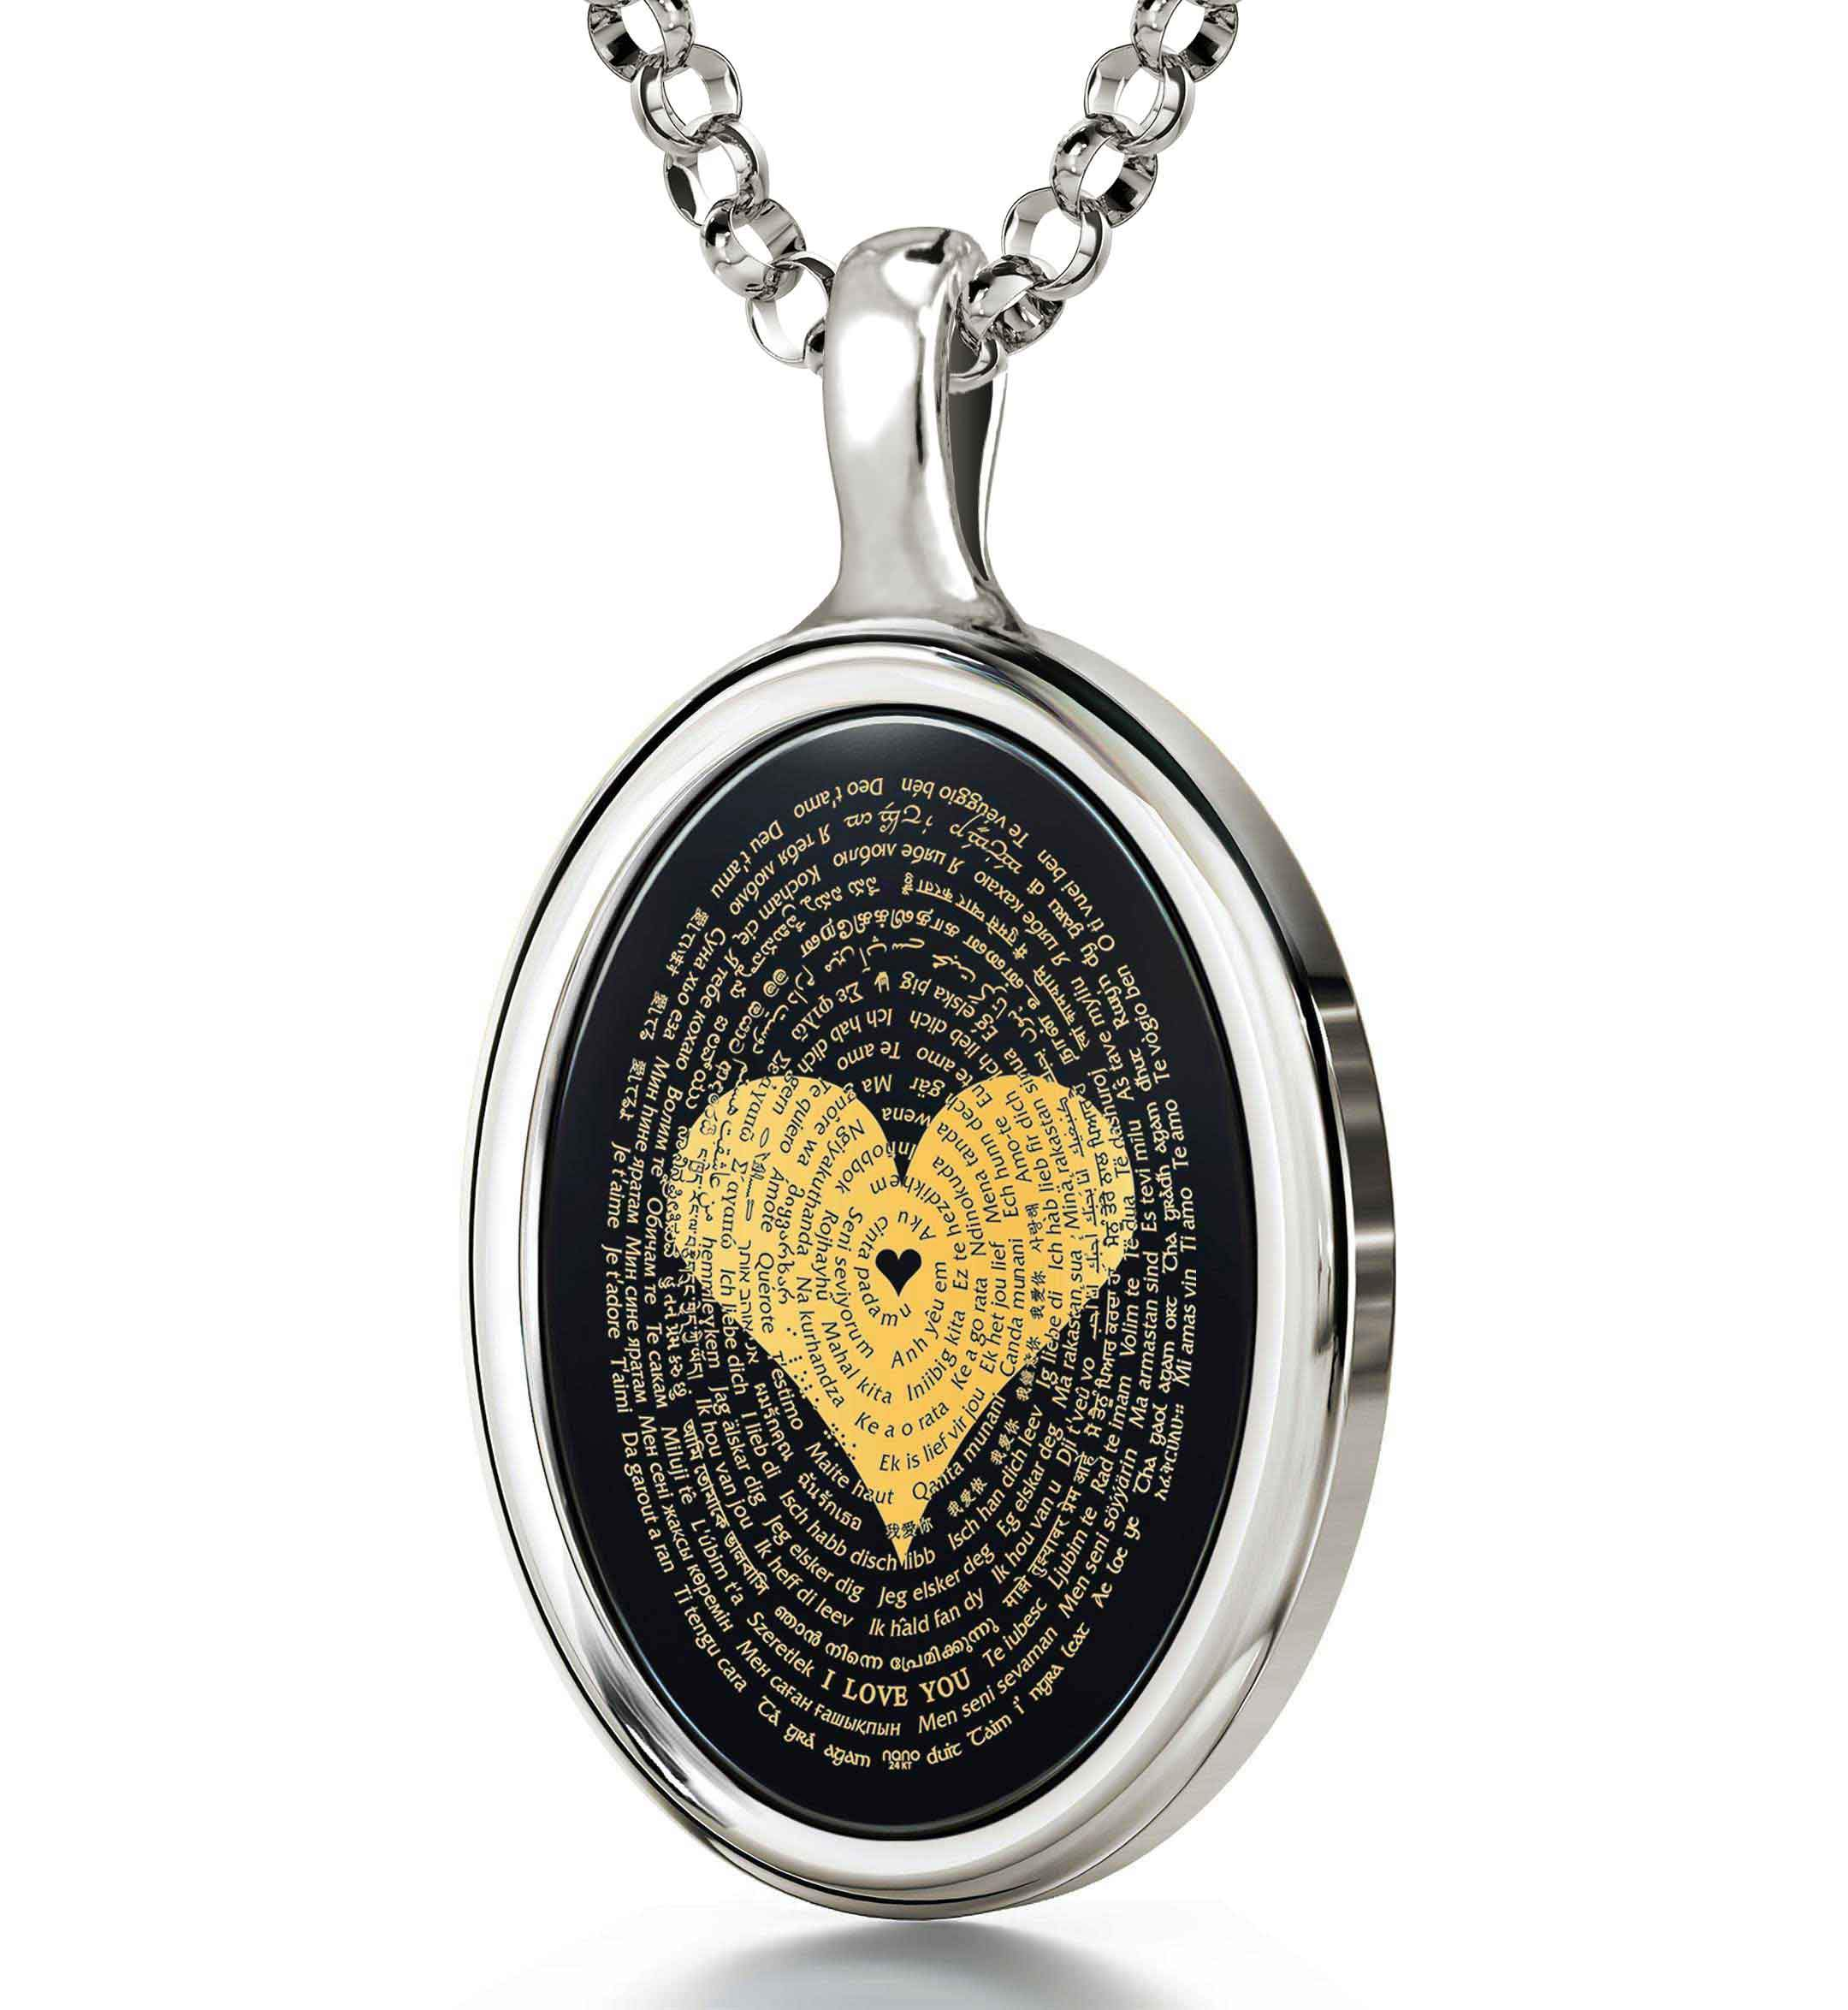 Valentines Day Gifts for Her, Amaze Her with Nano Jewelry!